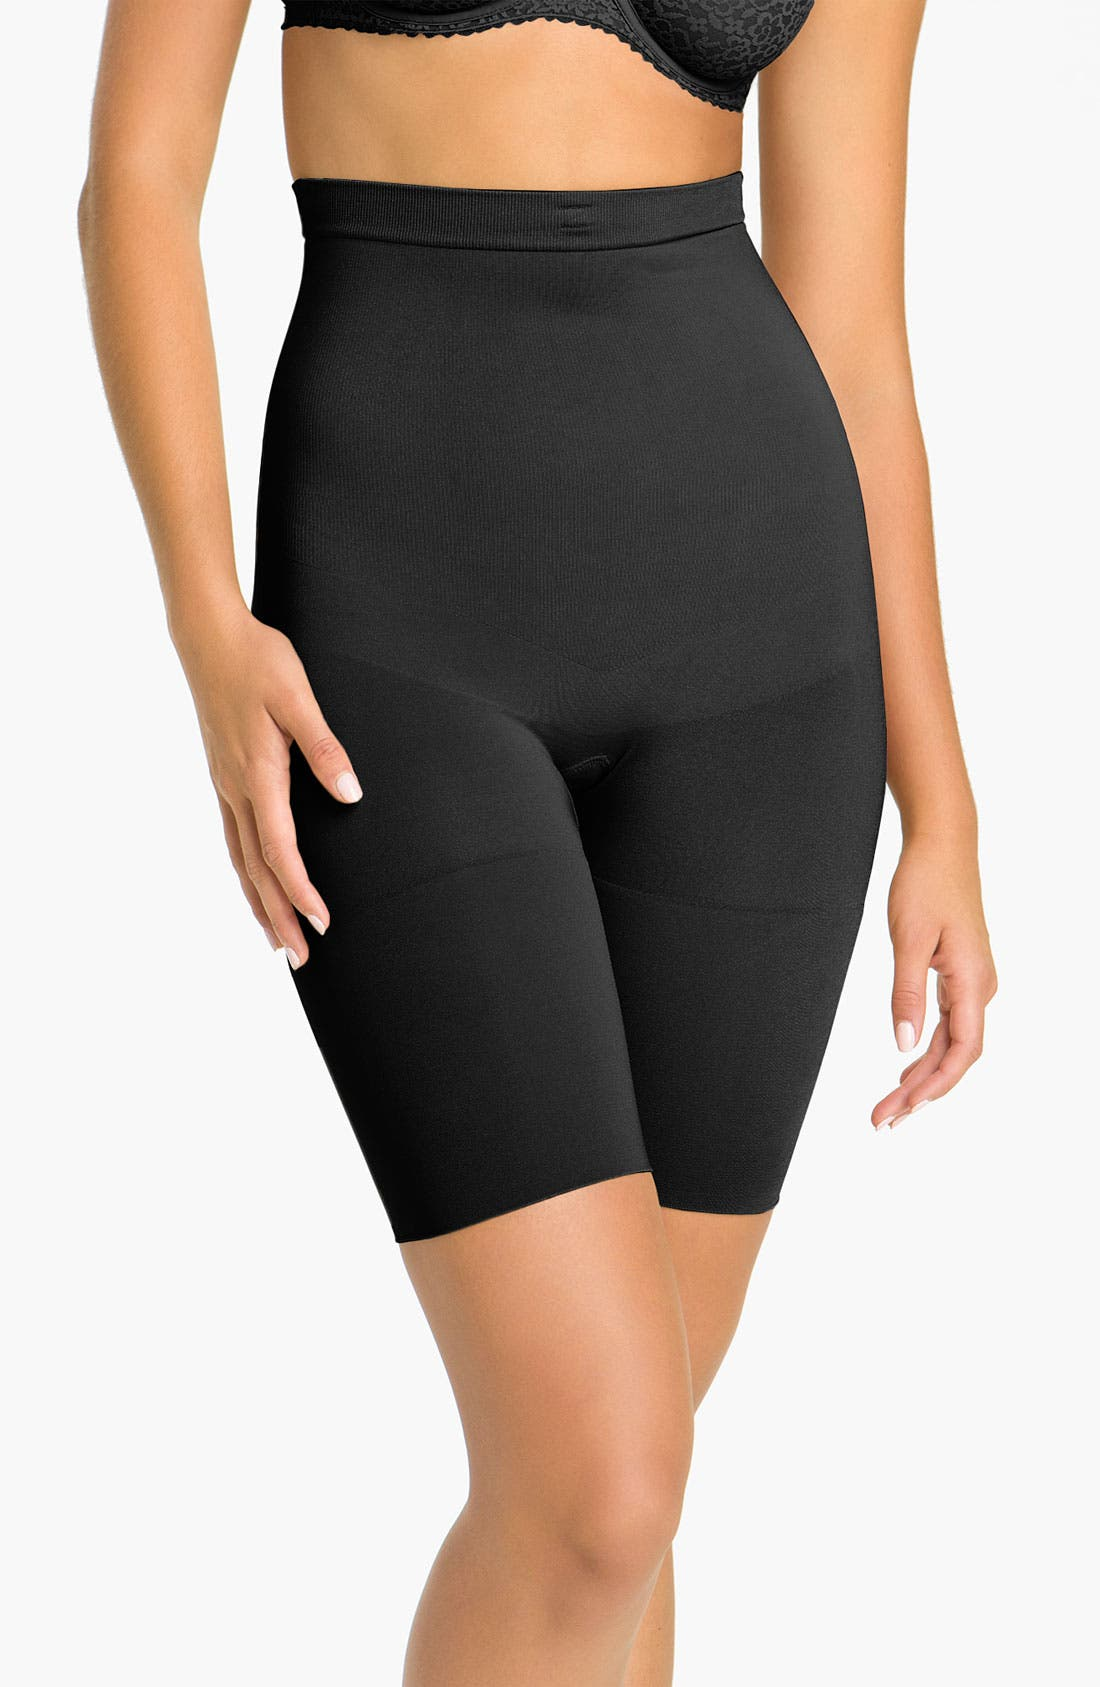 Alternate Image 1 Selected - SPANX® 'Slim Cognito' Mid-Thigh Bodysuit Shaper